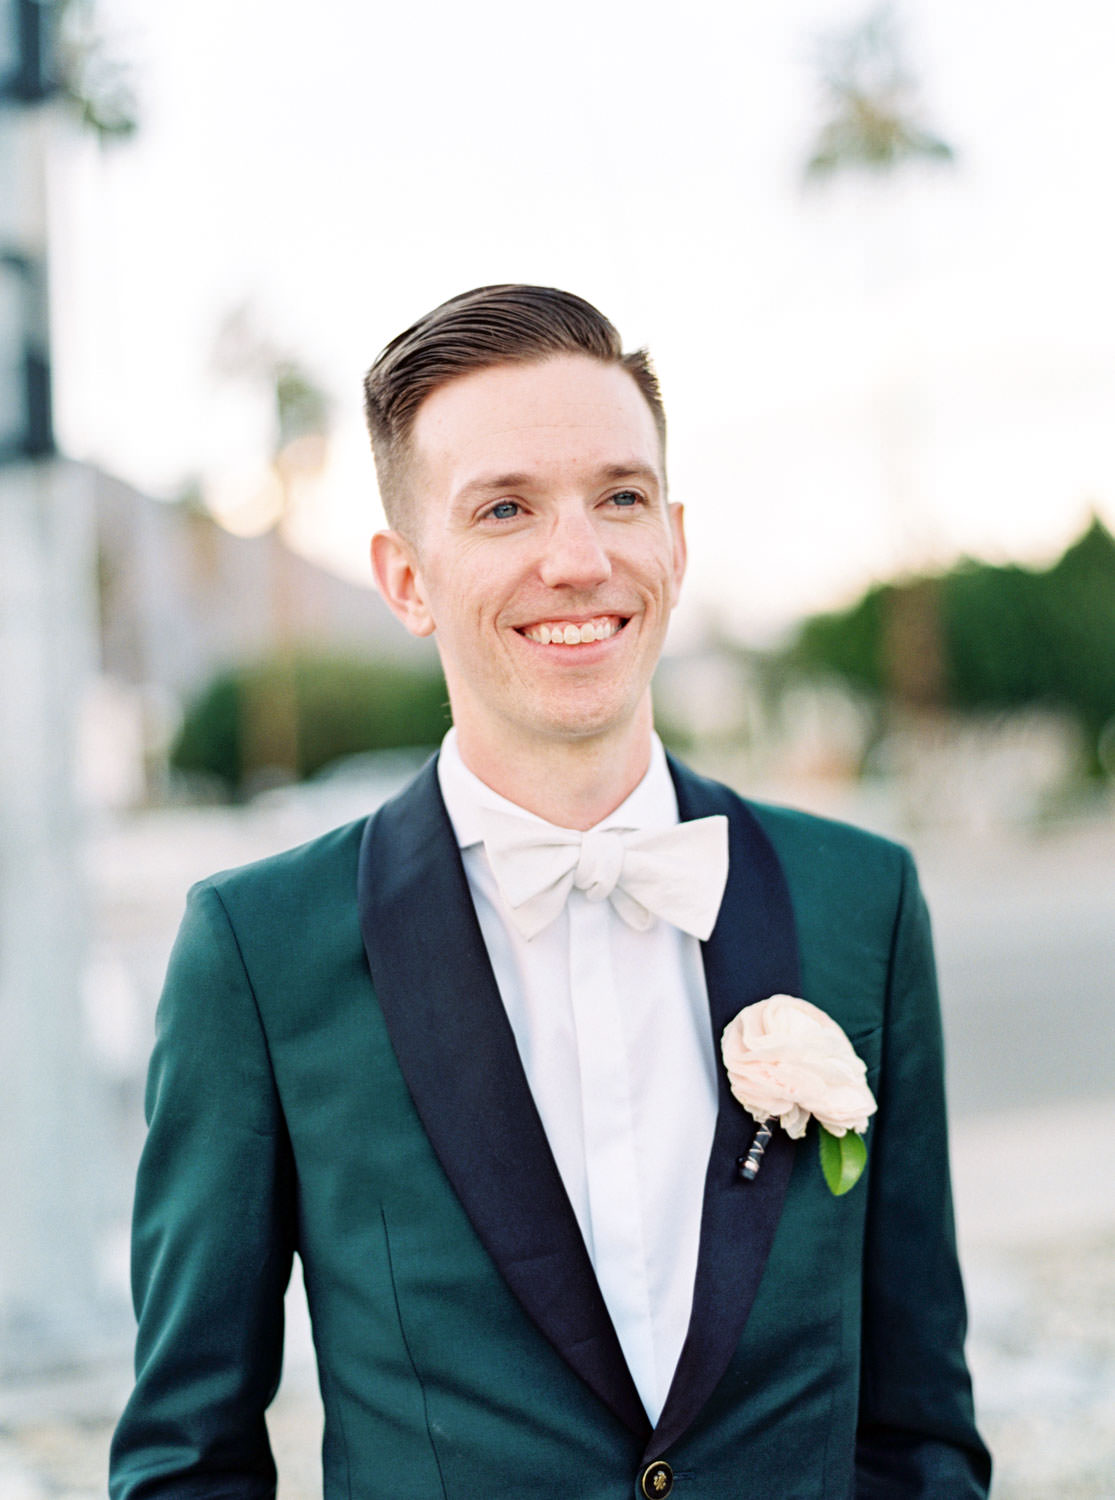 Groom in dark teal tuxedo with large ivory boutonniere and ivory bowtie. Riviera Palm Springs Wedding by Cavin Elizabeth Photography